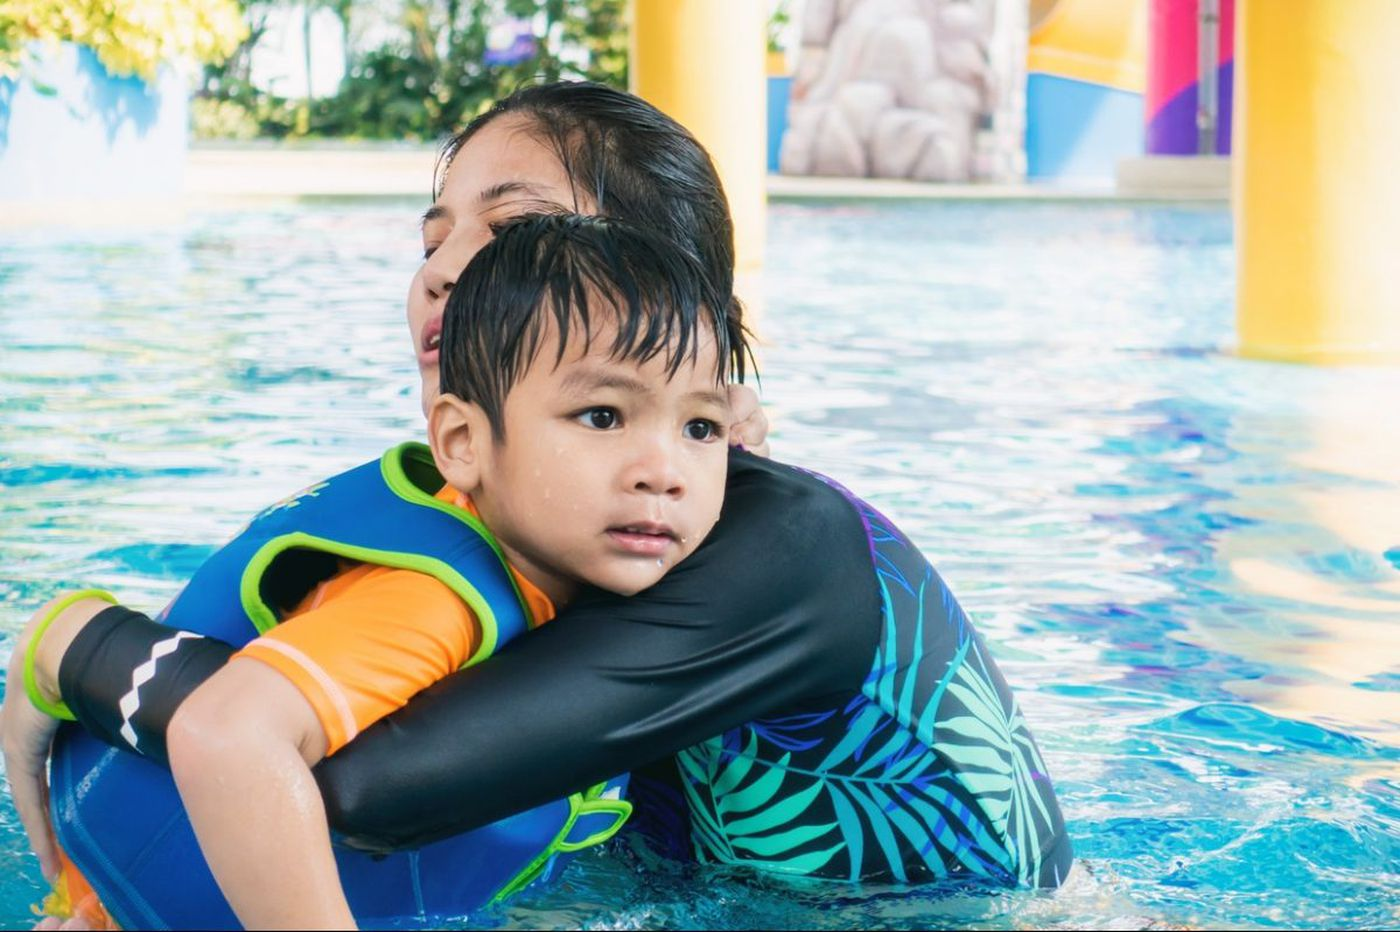 Drowning is never dry: Two ER doctors explain the real swimming danger kids face